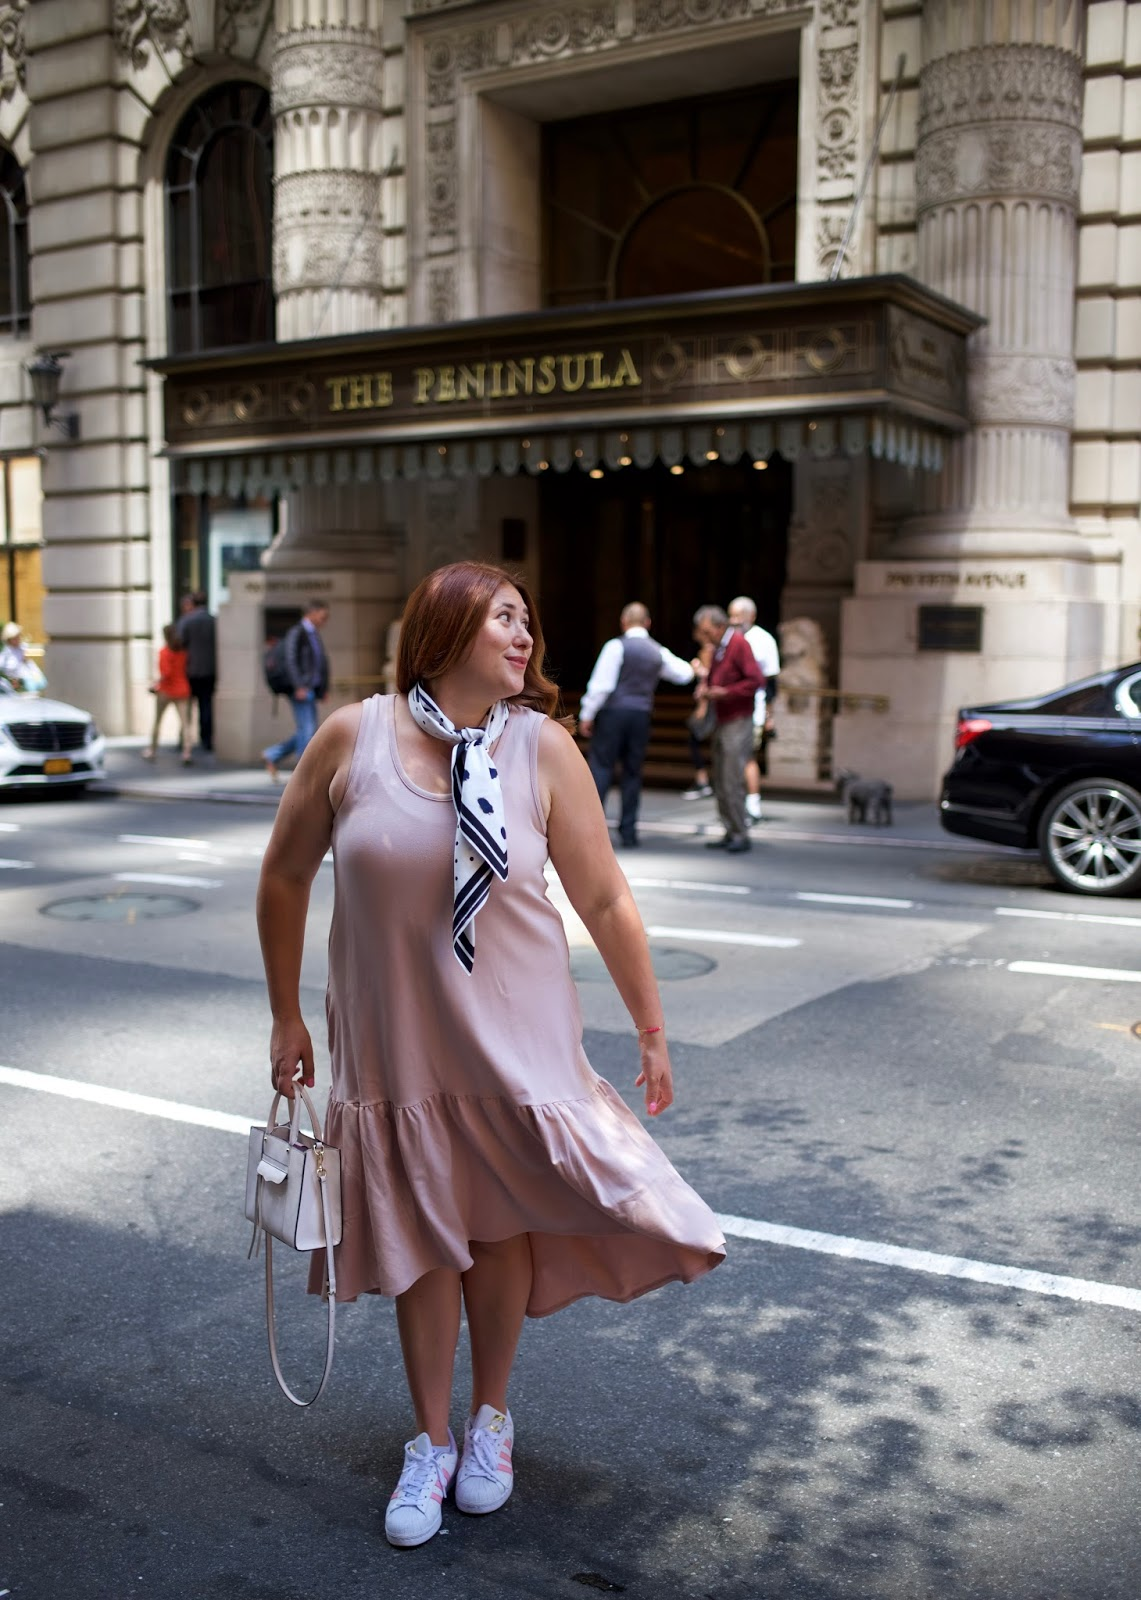 peninsula hotel new york, norsdtom leith dress, blush dress, city outfit, how to wear a neck scarf, Adidas superstars pink